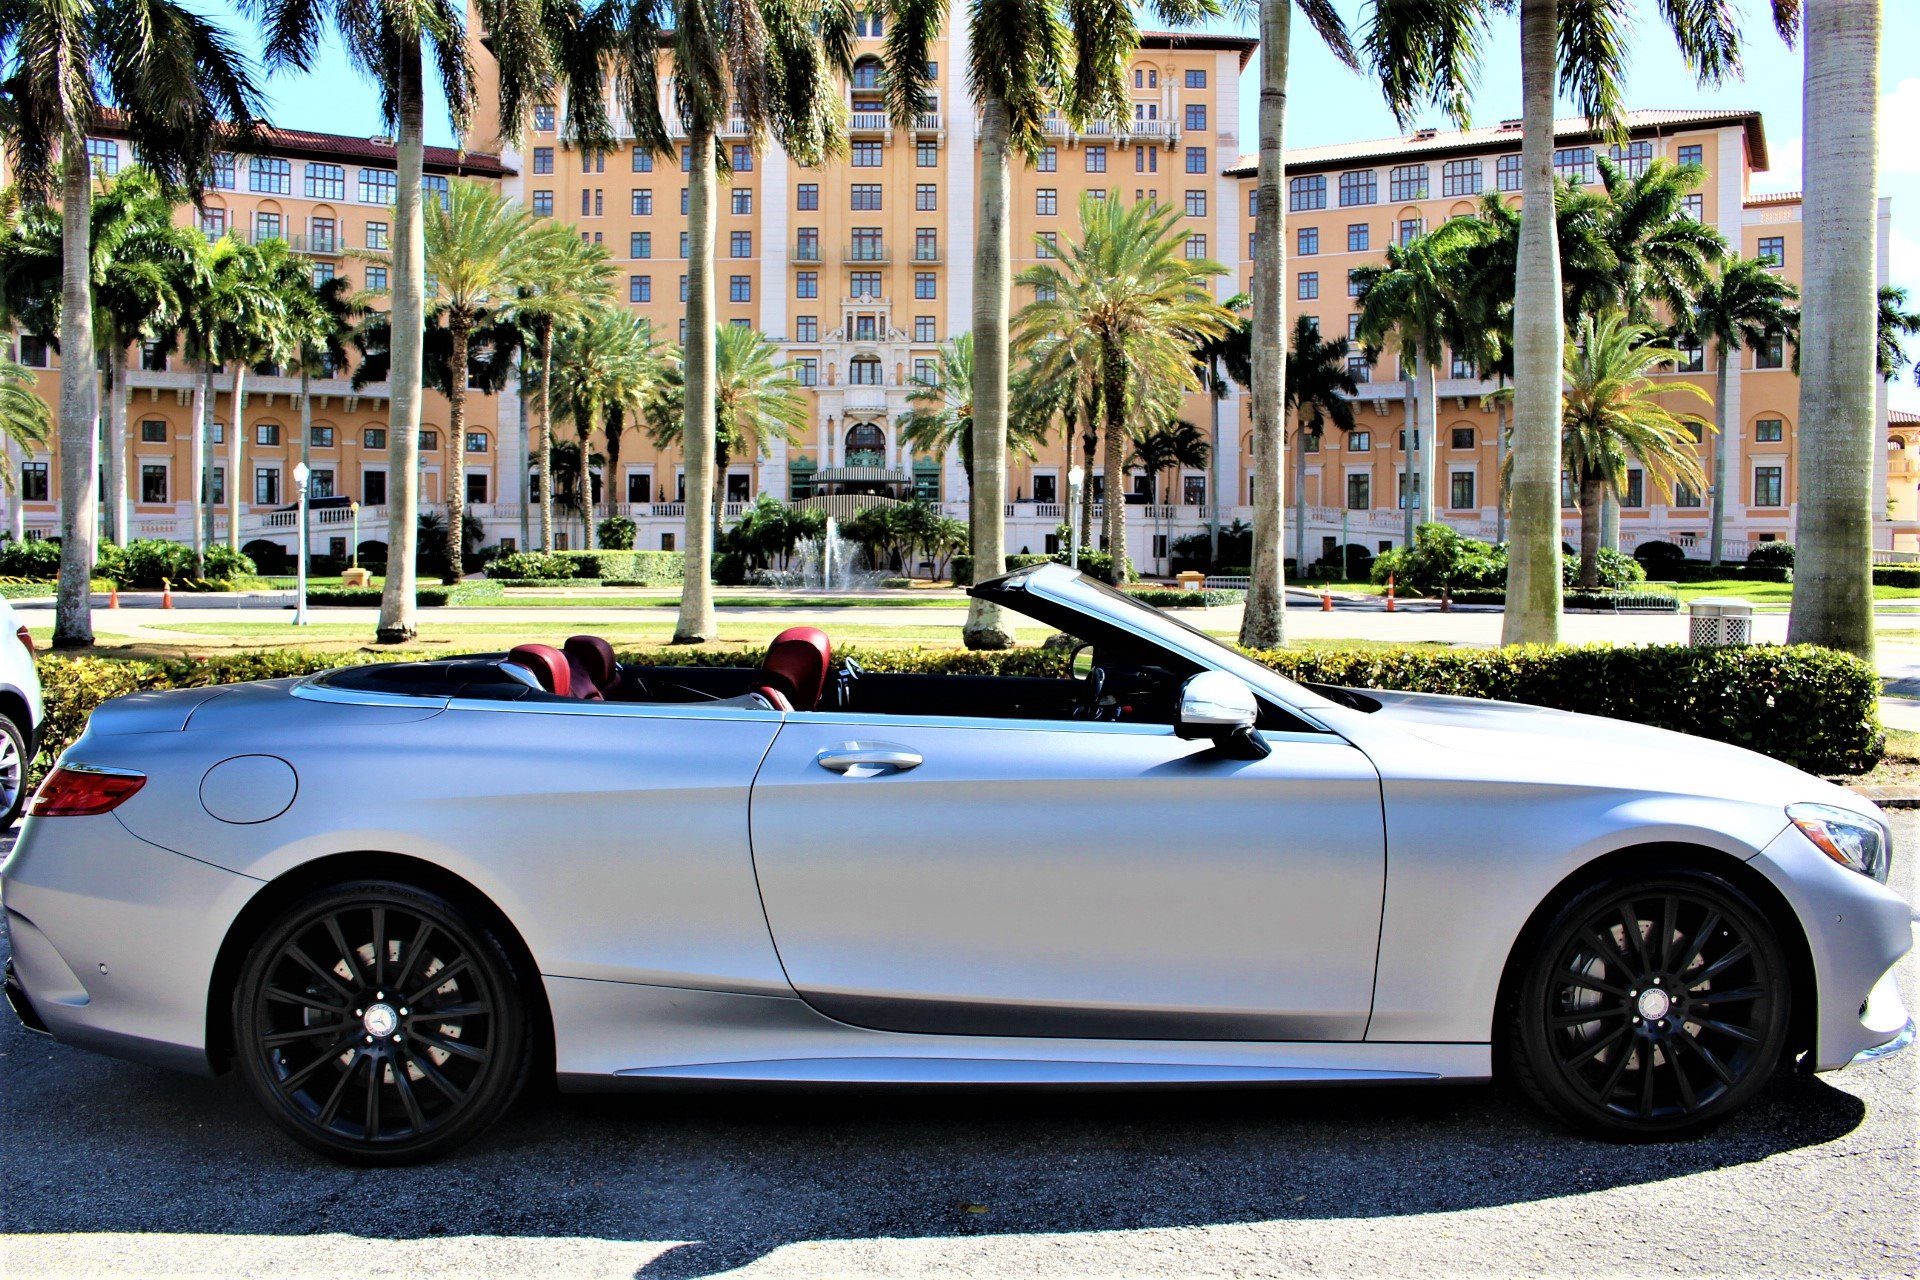 Used 2017 Mercedes-Benz S-Class S 550 for sale Sold at The Gables Sports Cars in Miami FL 33146 1